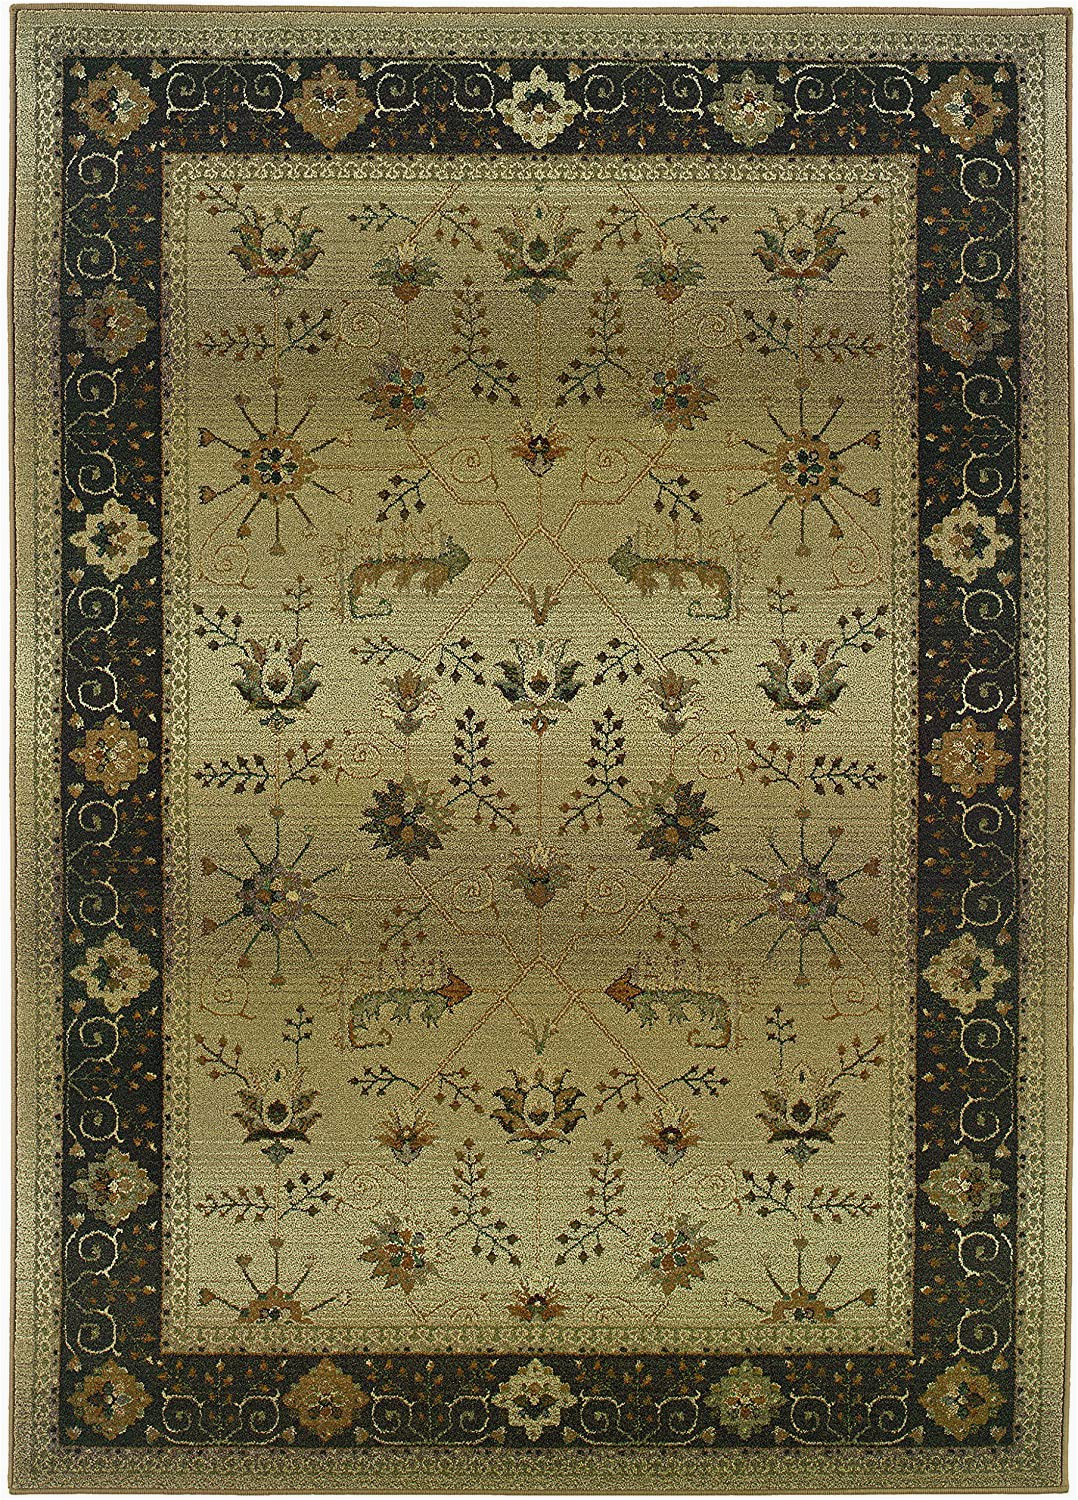 8 Ft Square area Rugs Traditional Genesis Tan 8ft Square area Rug Amazon